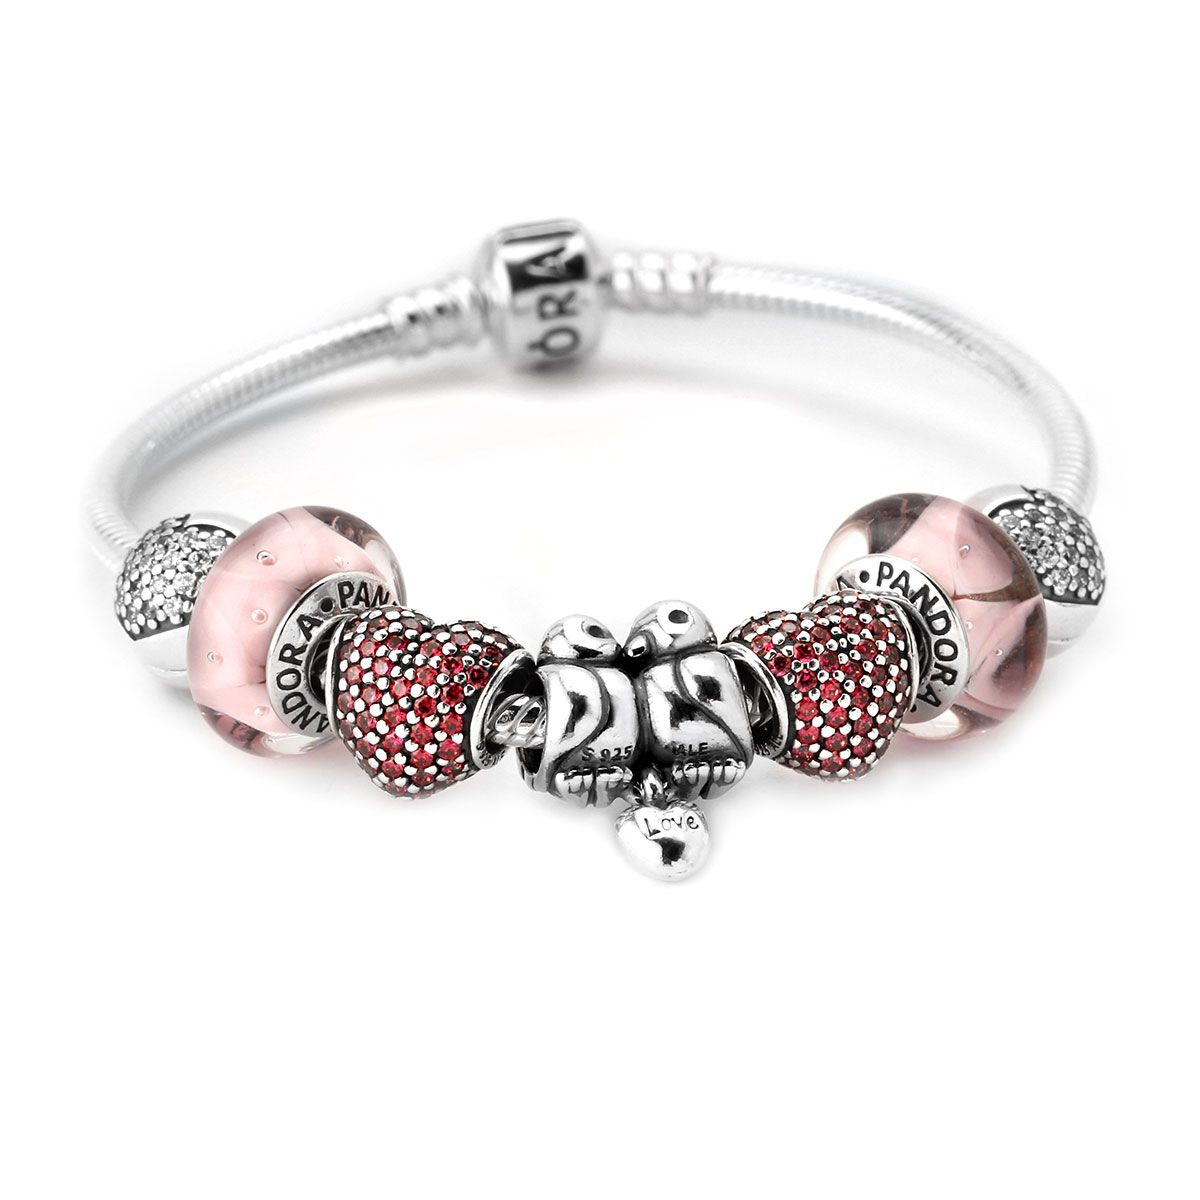 pandora love birds bracelet pandora valentines day 2013 cute gift ideas for her from him the perfect gift for a wife fiance love of your life - Pandora Valentines Bracelet